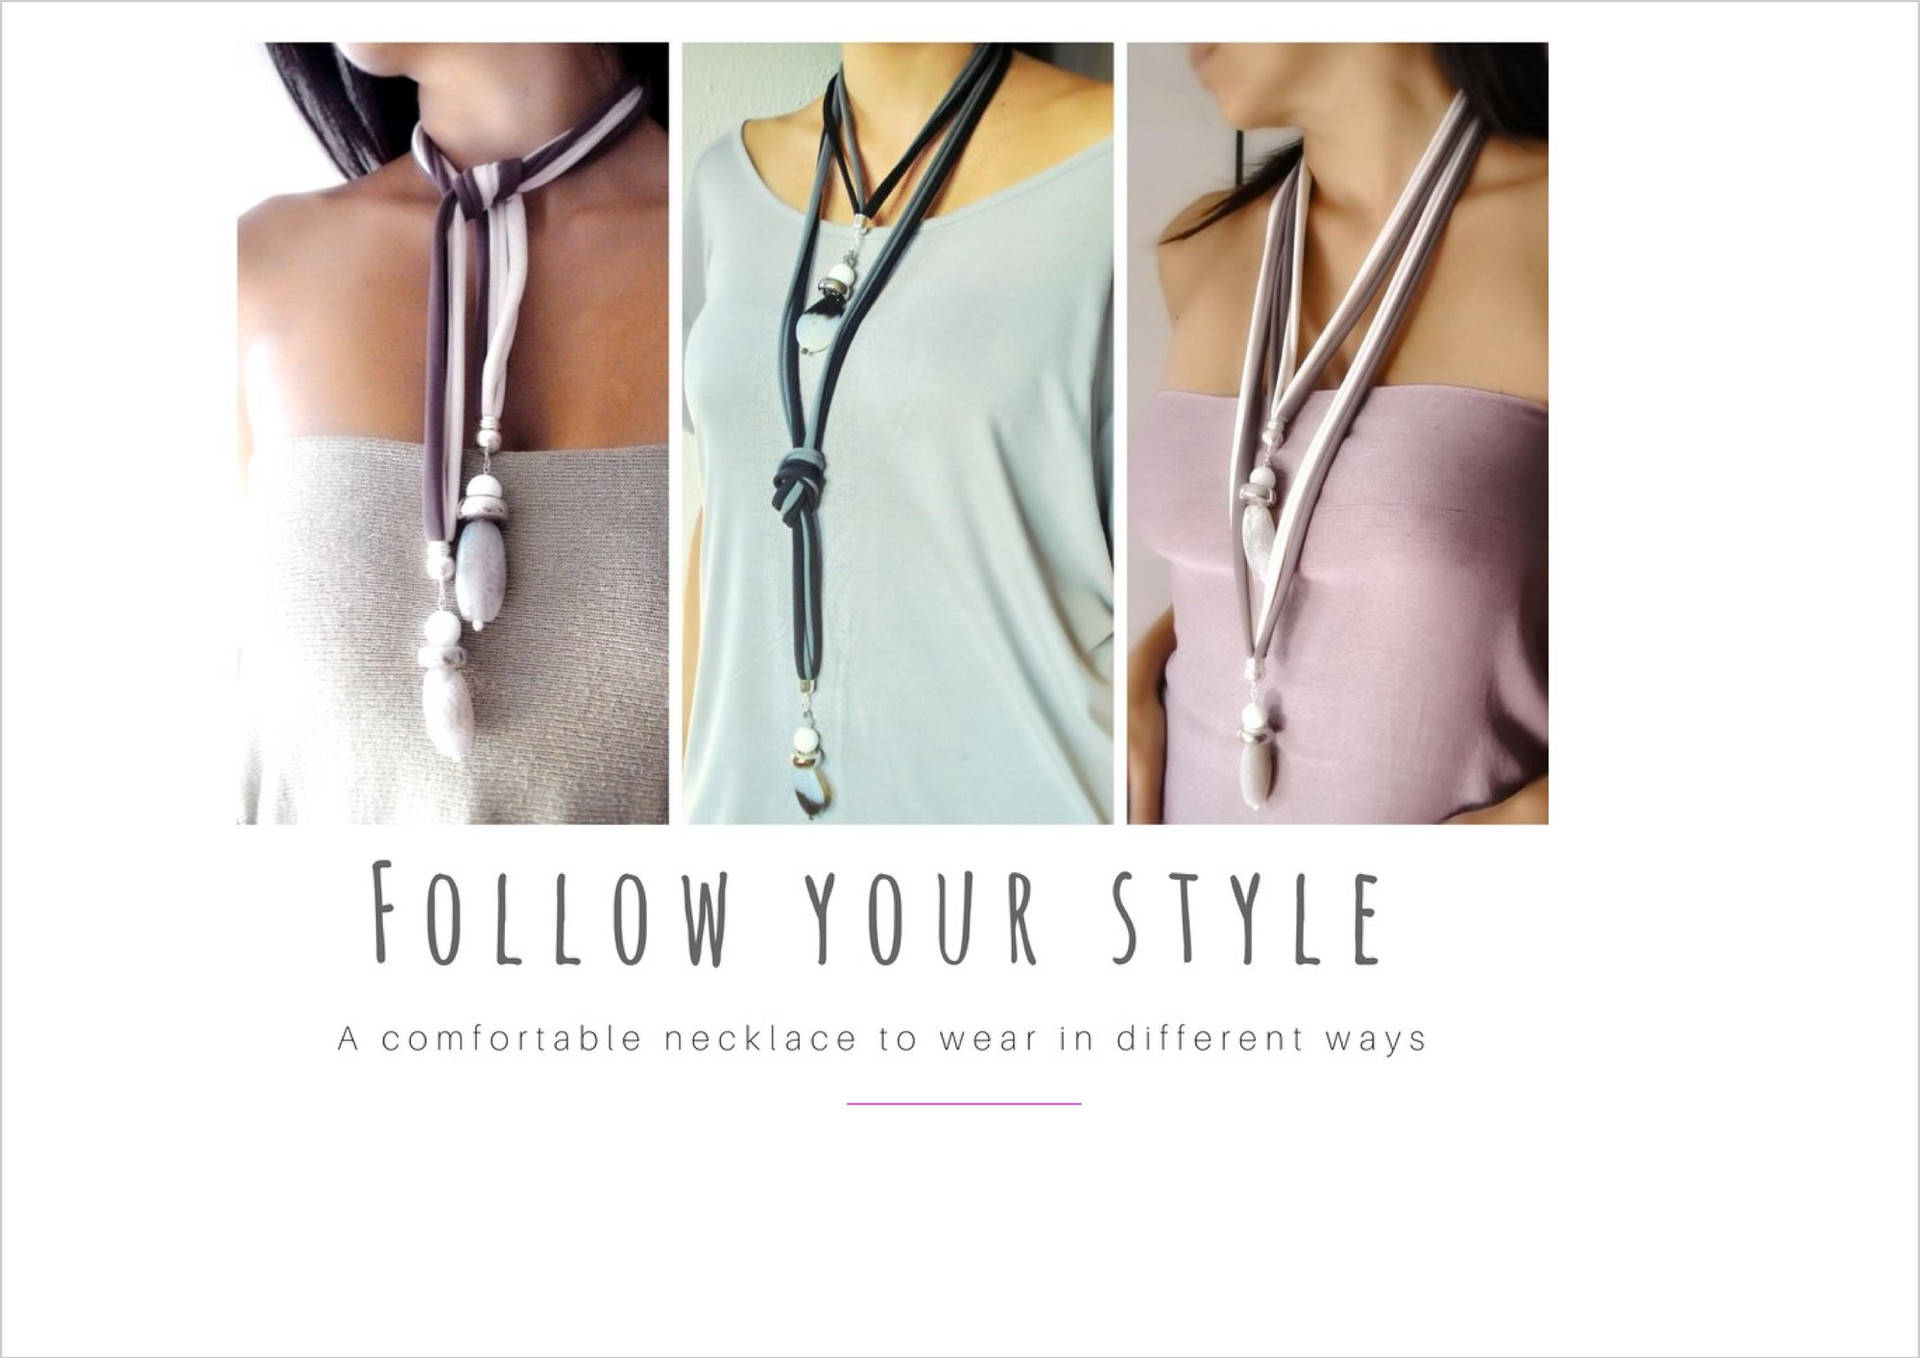 Follow Your Style